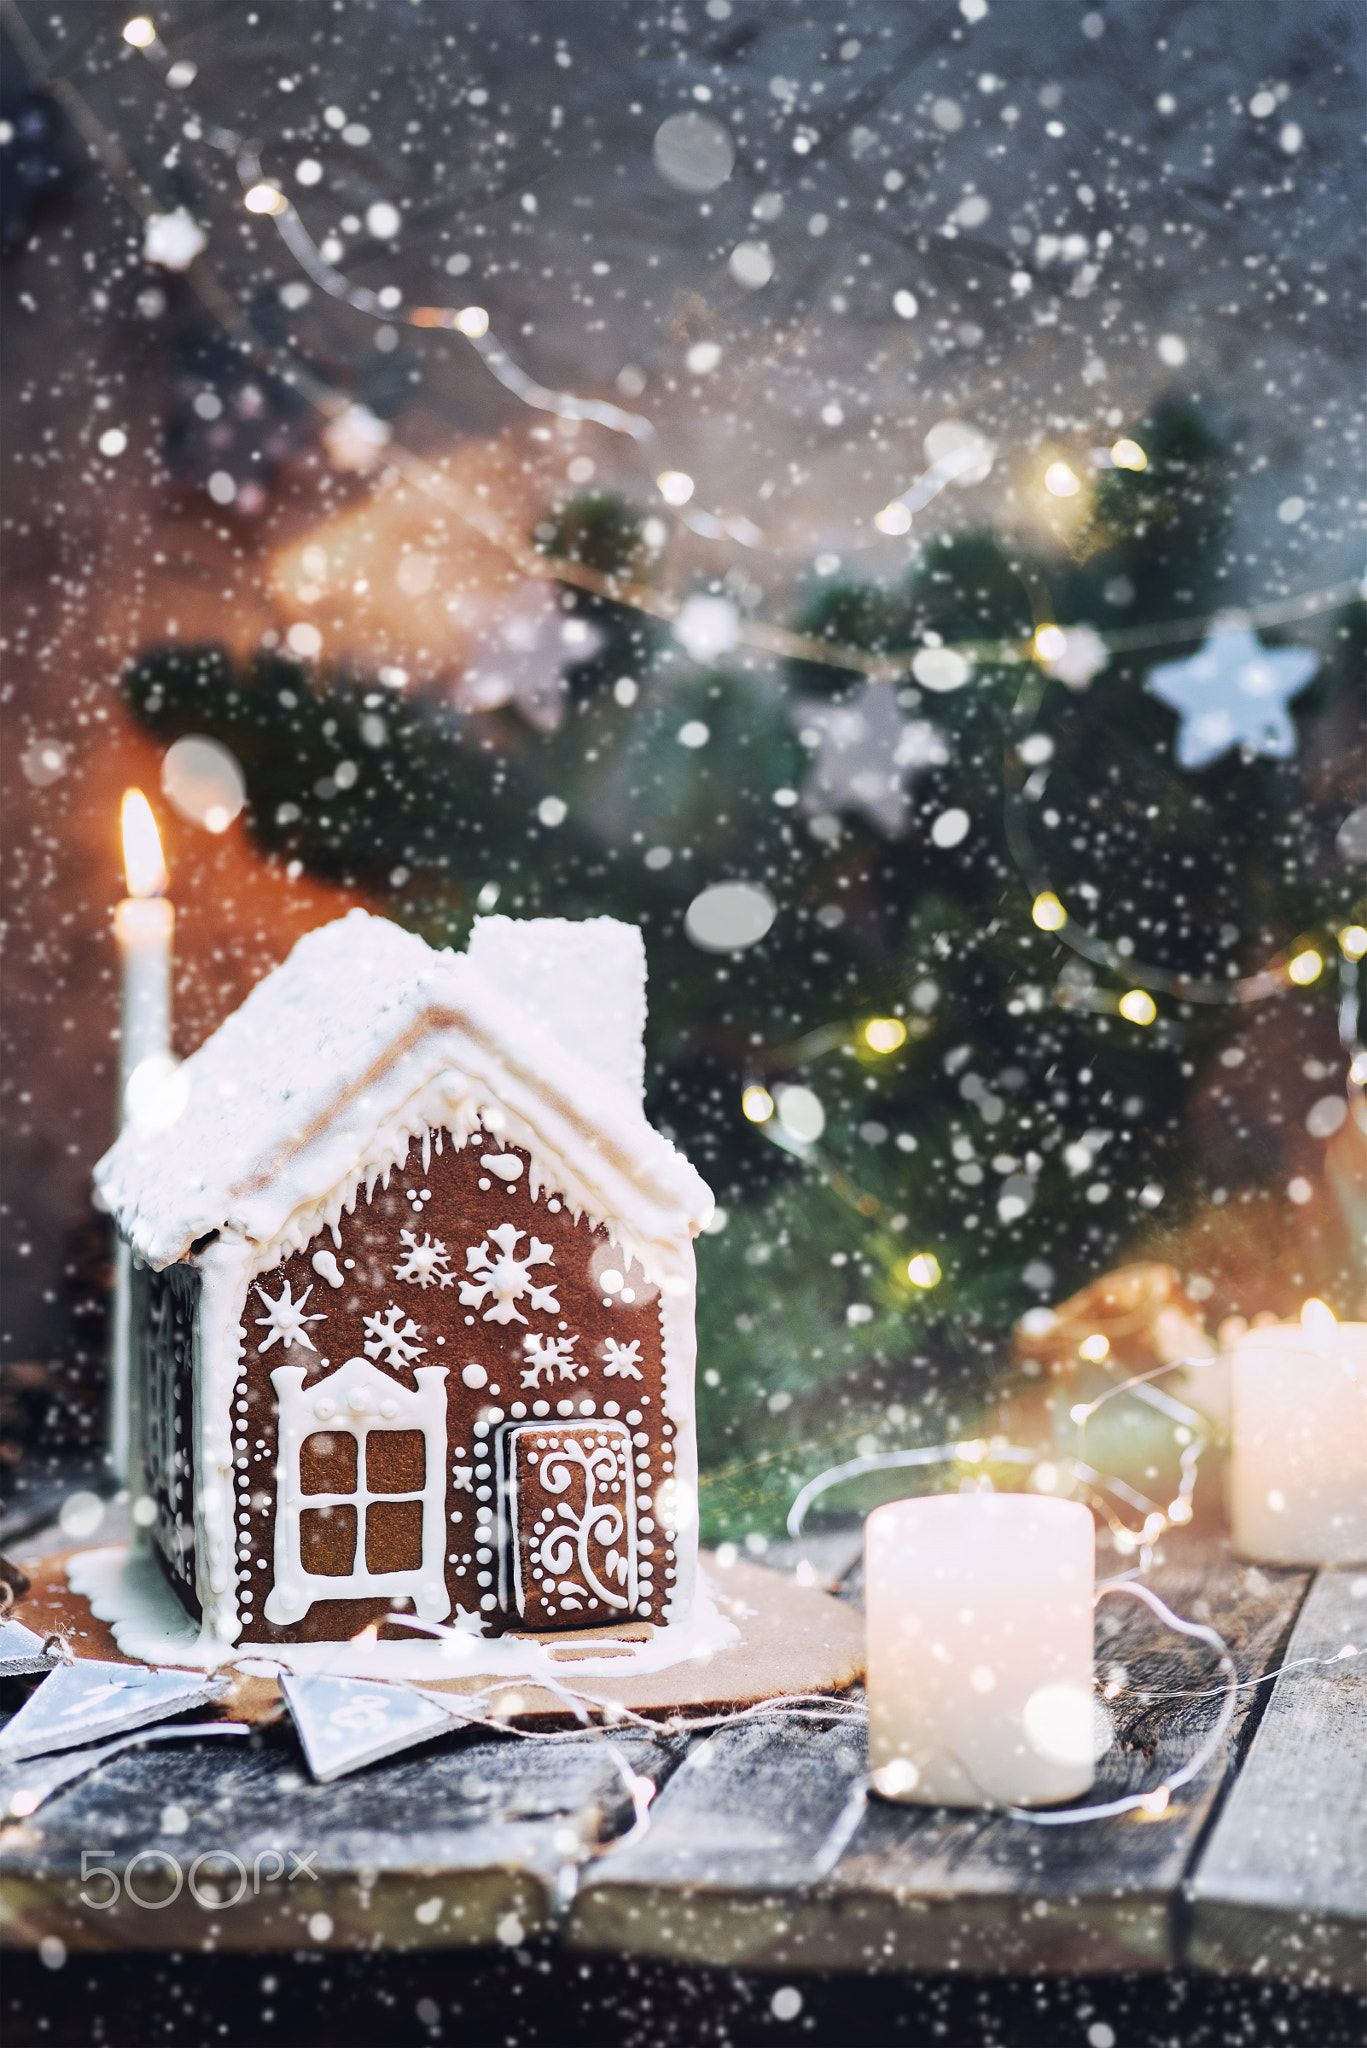 Homemade Gingerbread House With Candles Christmas Lights And